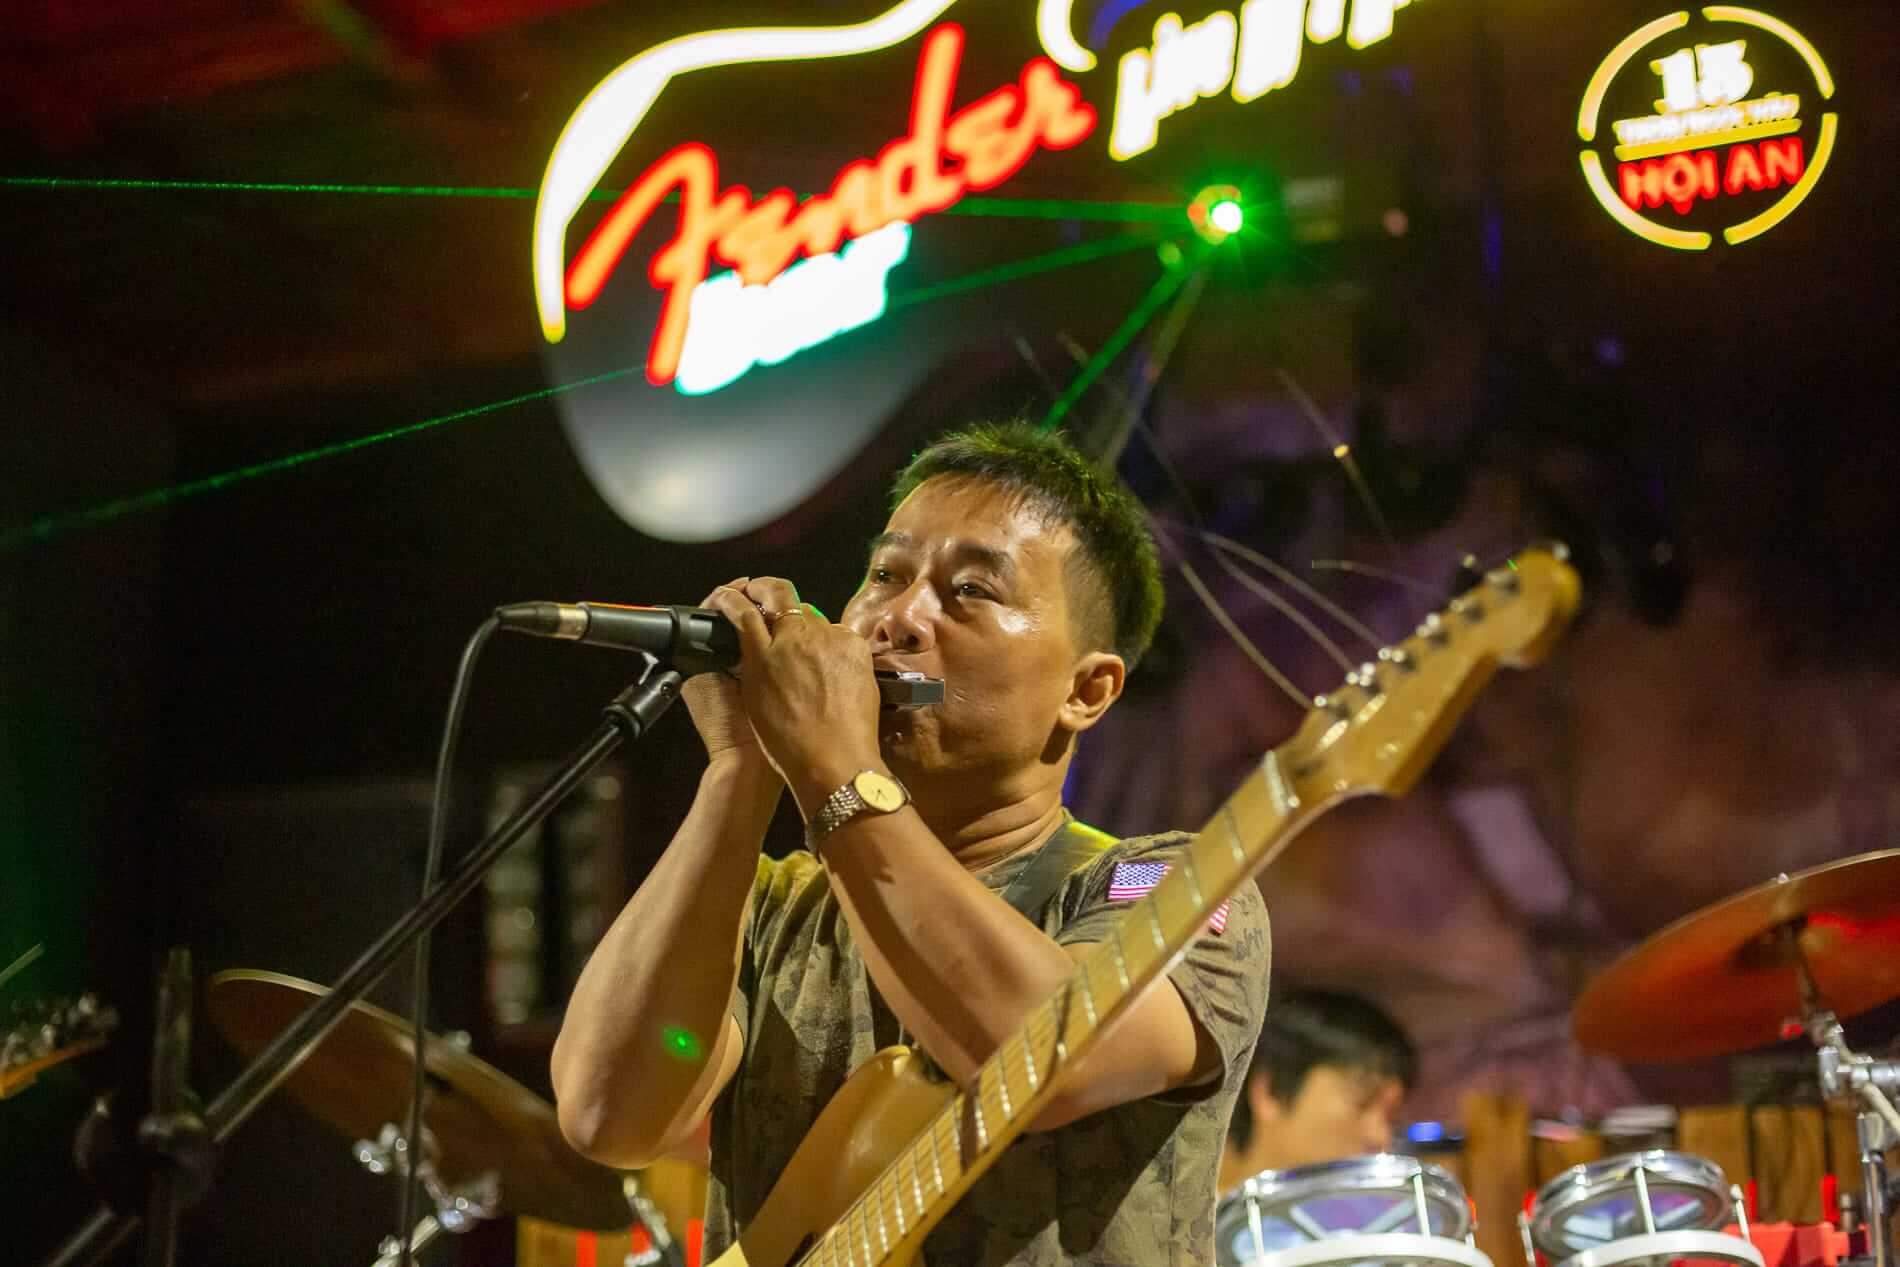 Tam on stage at Fender Bar